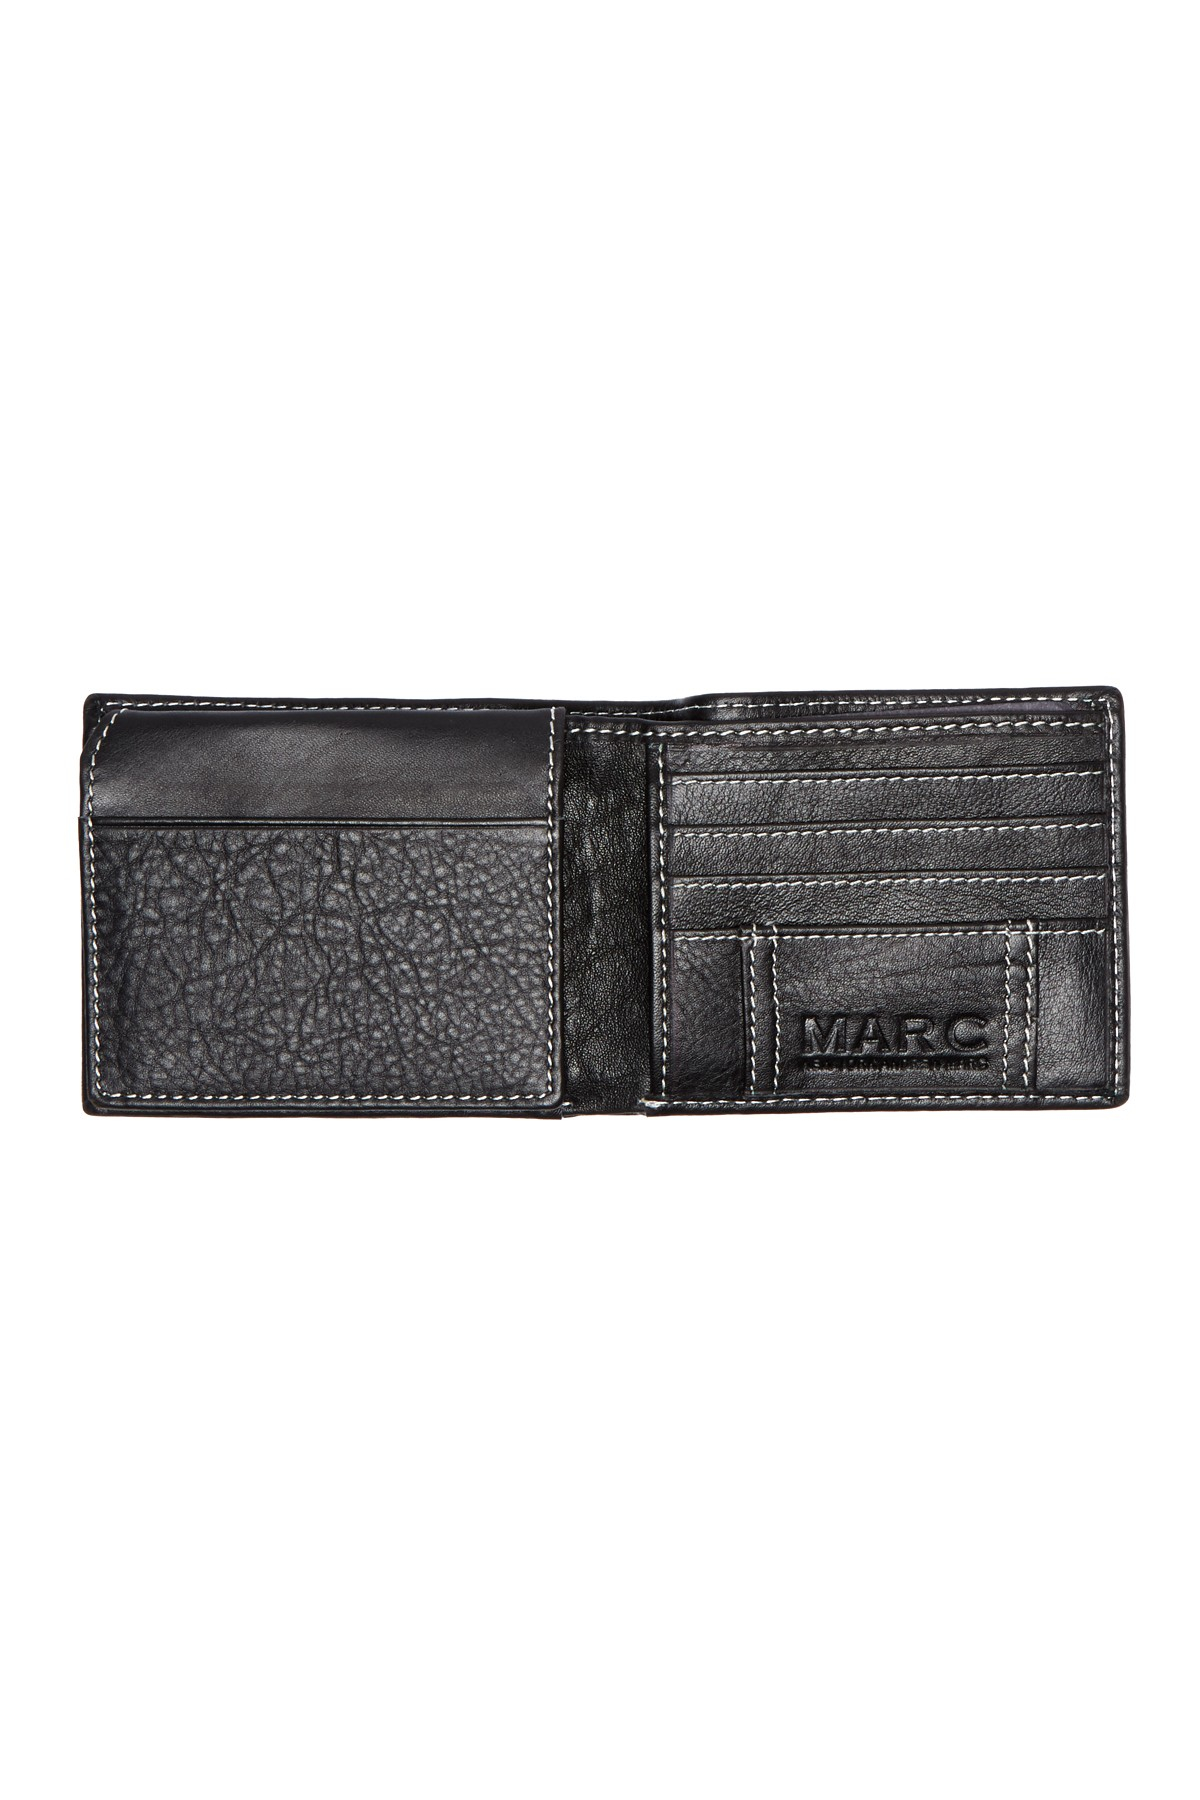 Marc new york sergio leather passcase wallet in black for for Nordstrom rack new york